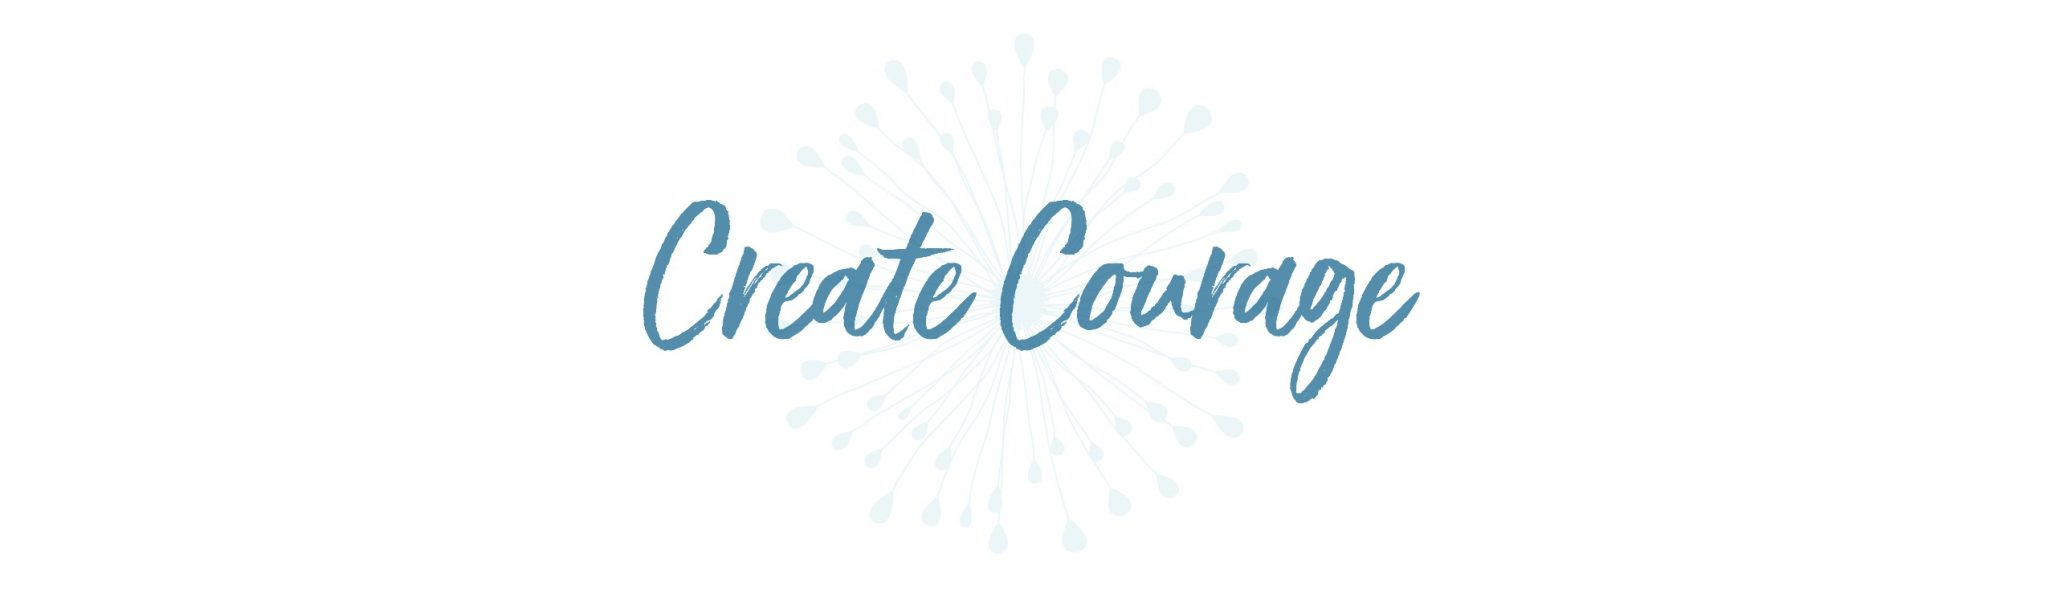 create courage